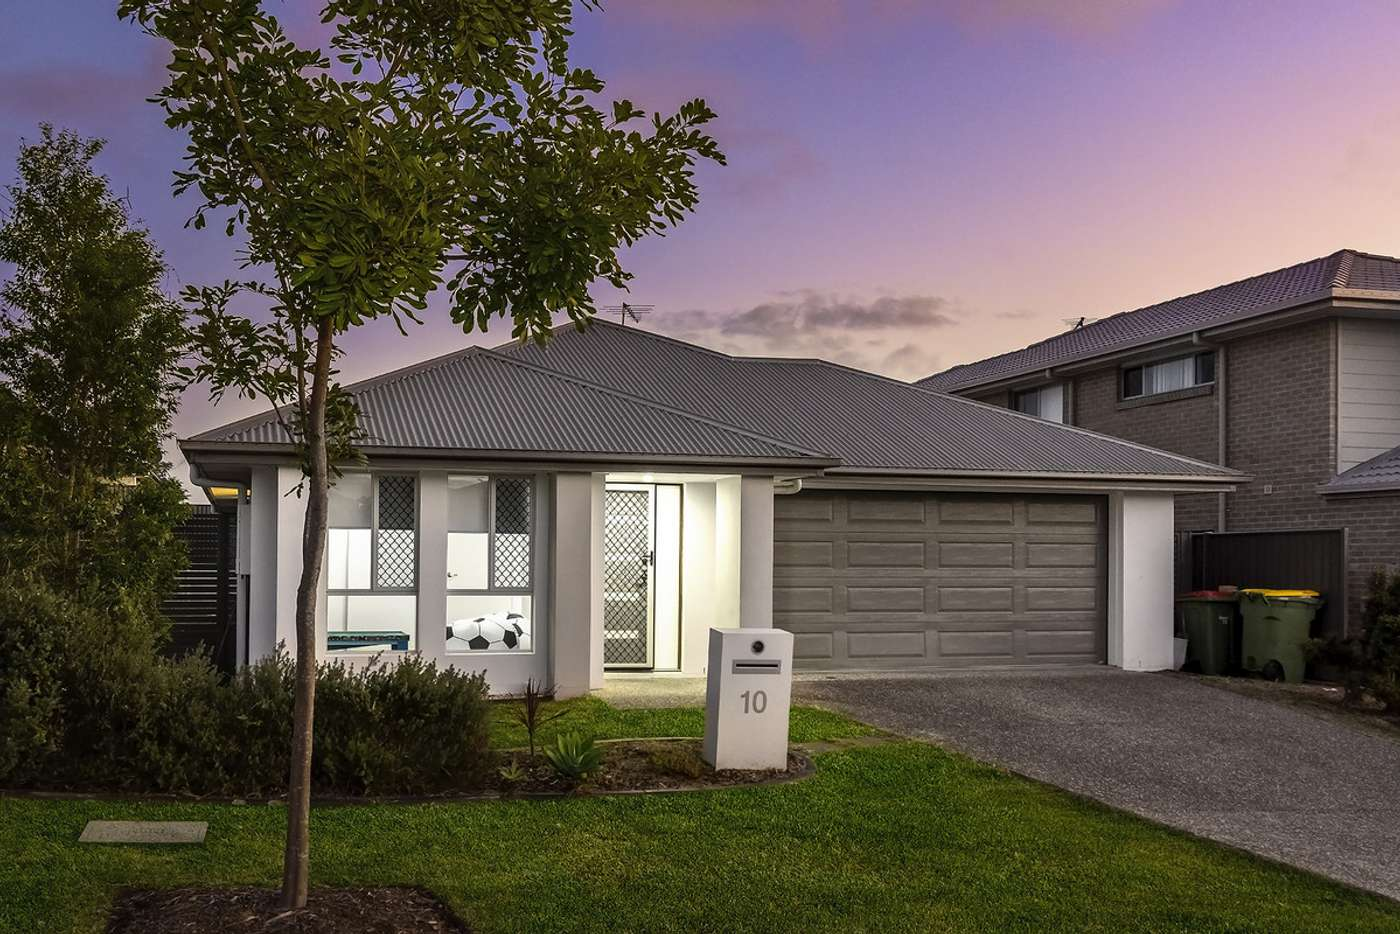 Main view of Homely house listing, 10 Capella Street, Coomera QLD 4209